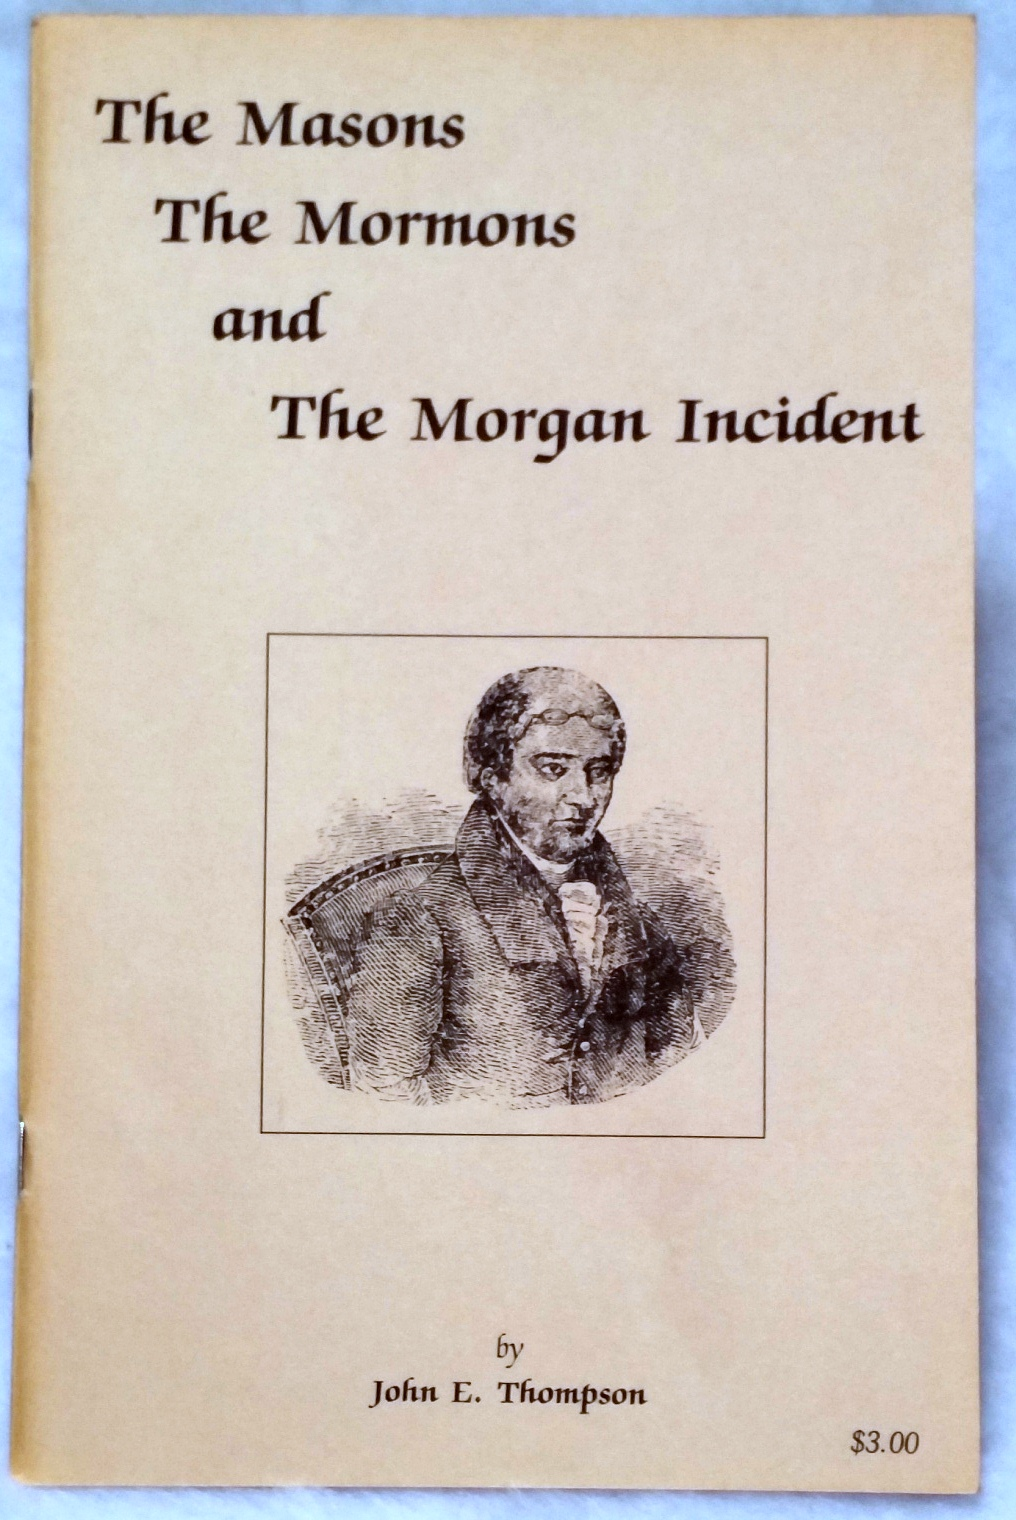 Image for The Masons, The Mormons, and The Morgan Incident